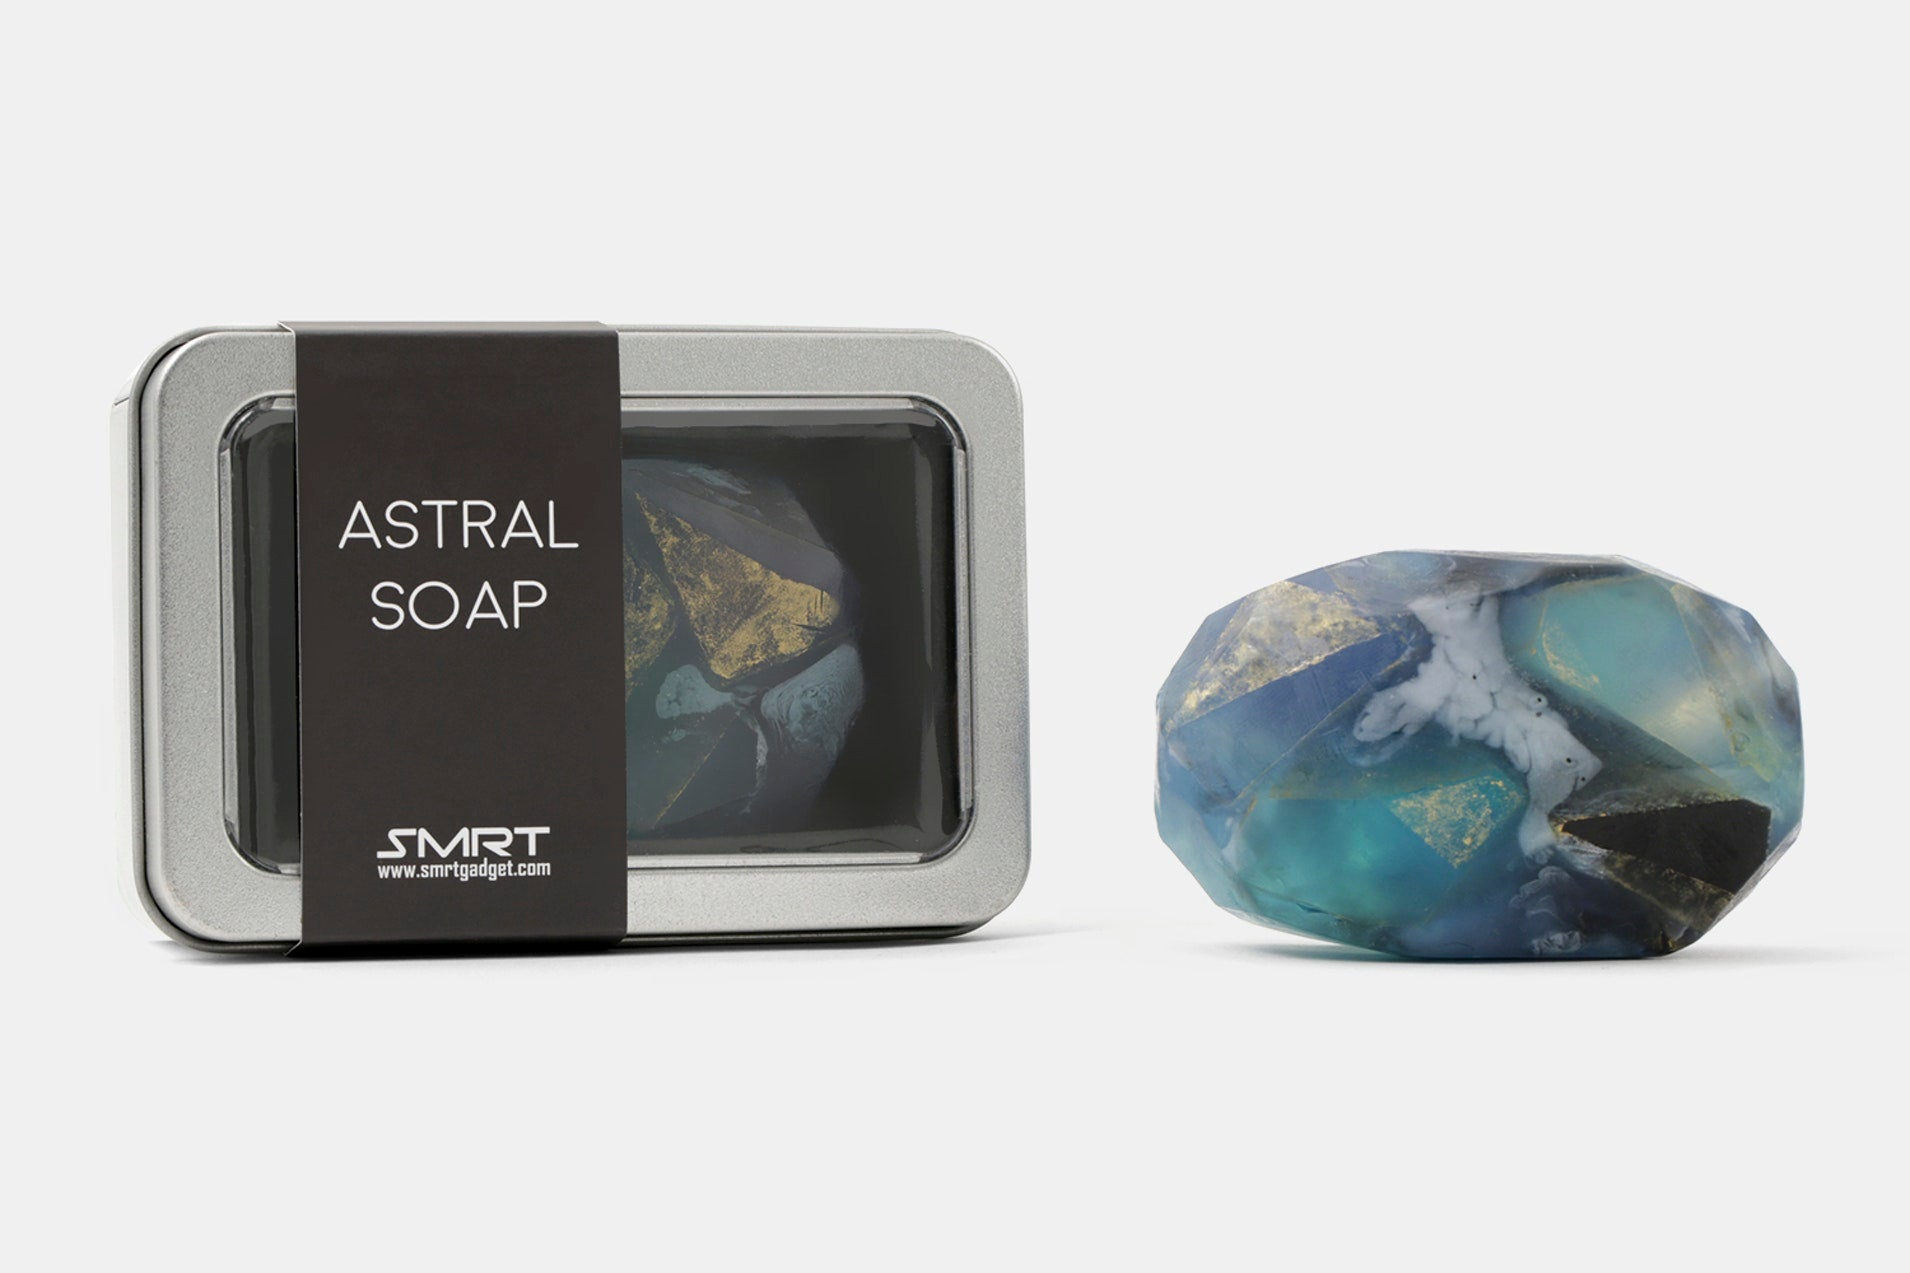 Home - Astral Soap (4 colors available)